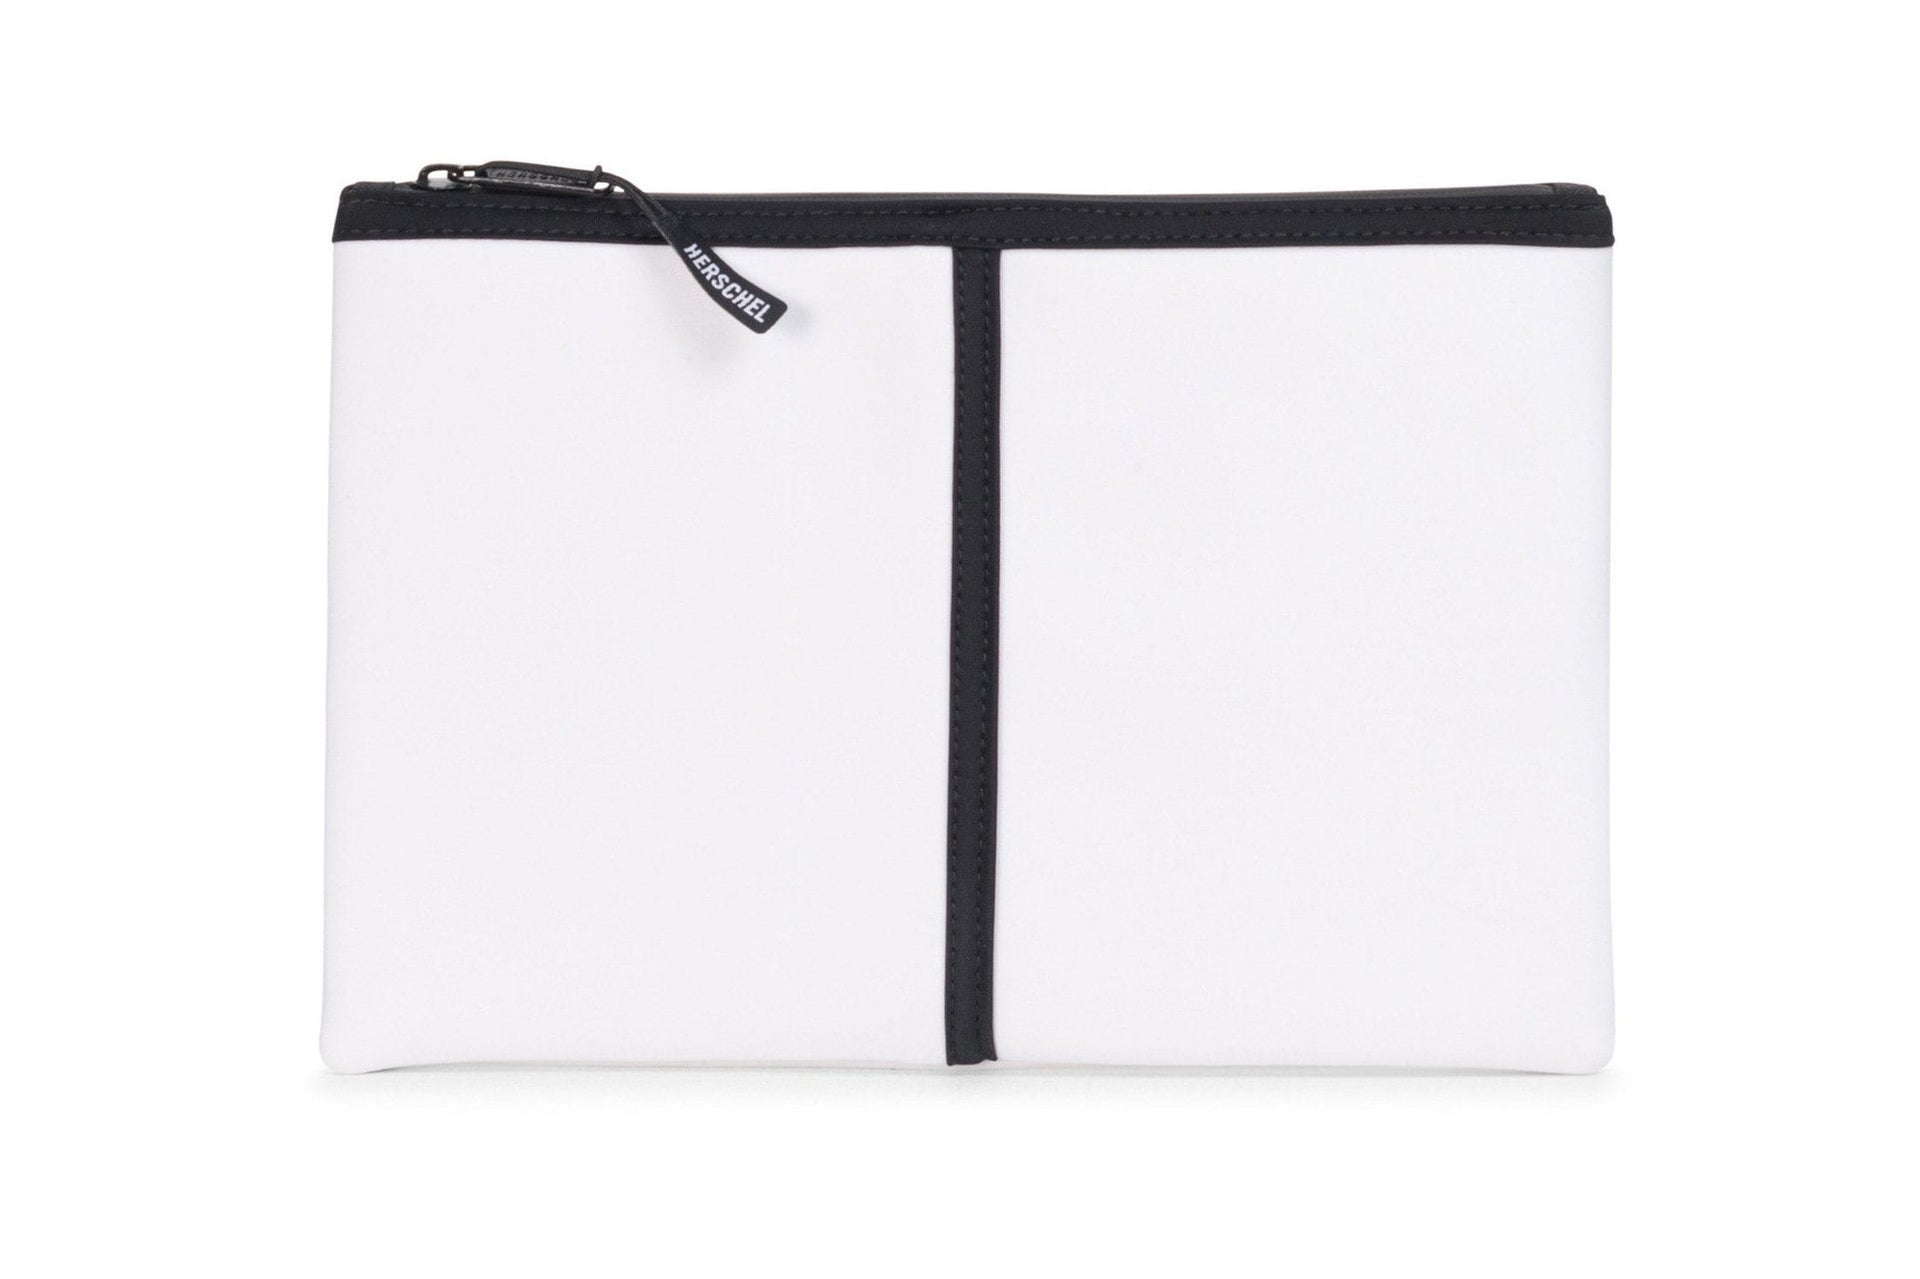 NETWORK L NEOPRENE ACCESSORIES HERSCHEL WHITE NEOPRENE L